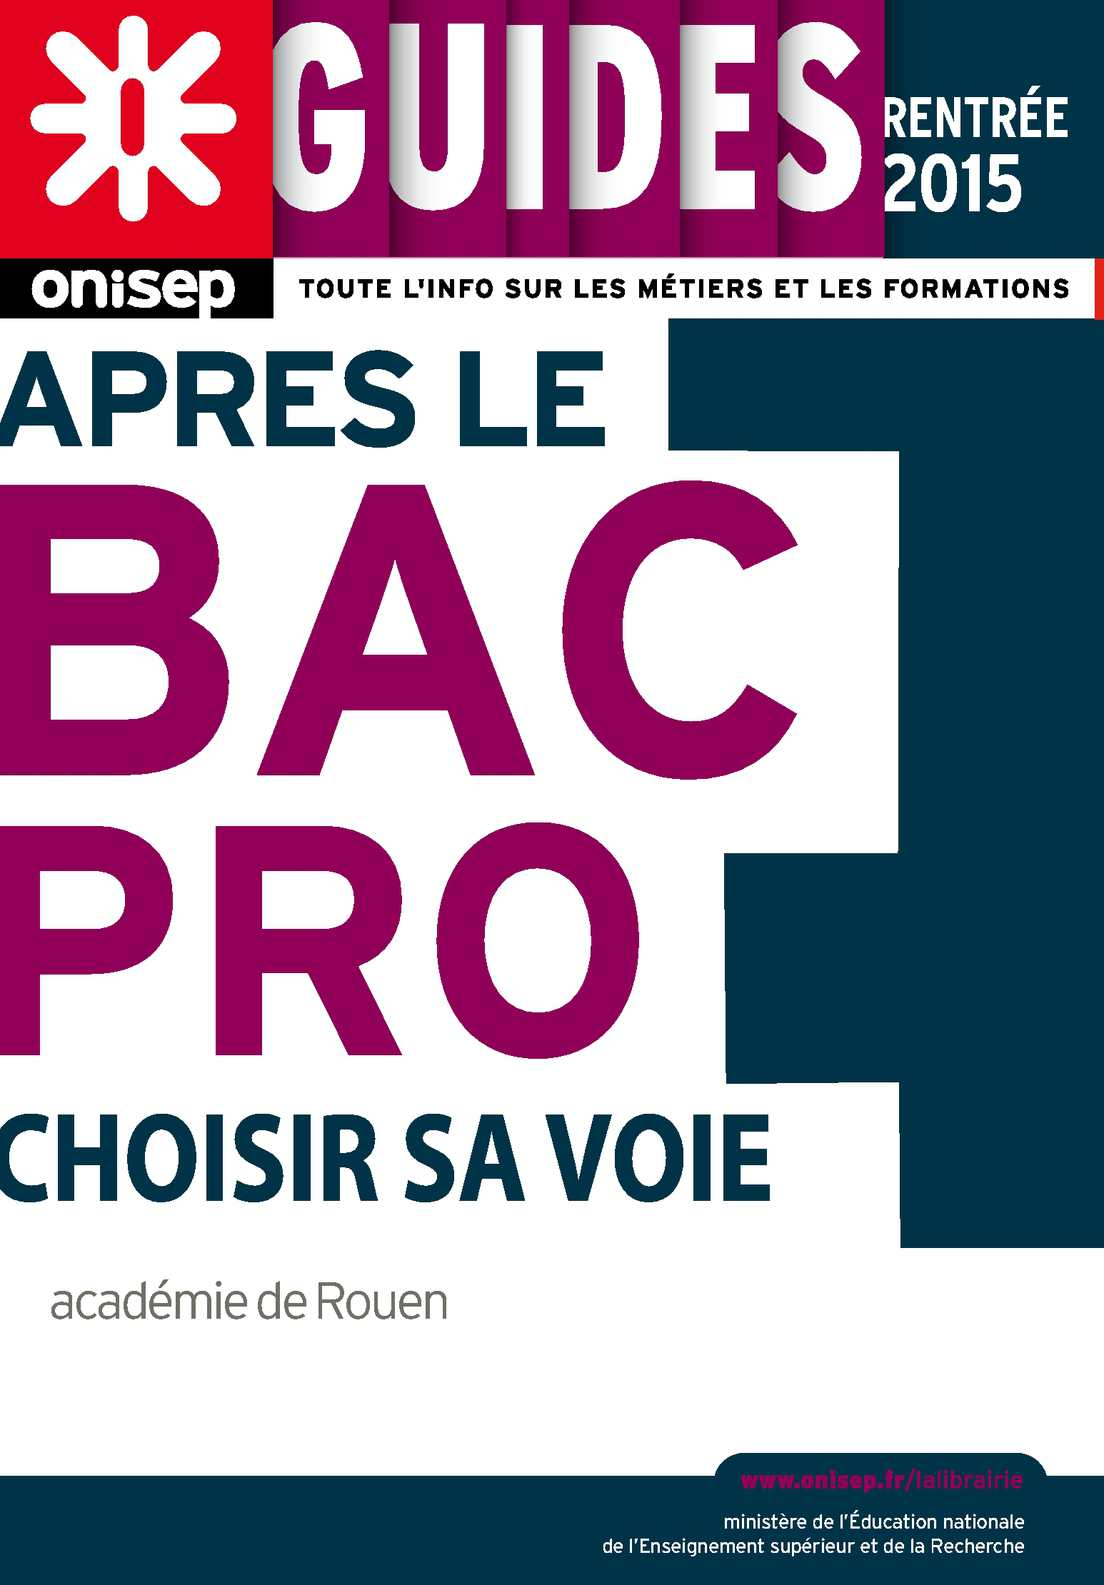 Calam o apr s le bac pro rentree 2015 onisep haute normandie - Office education nationale ...